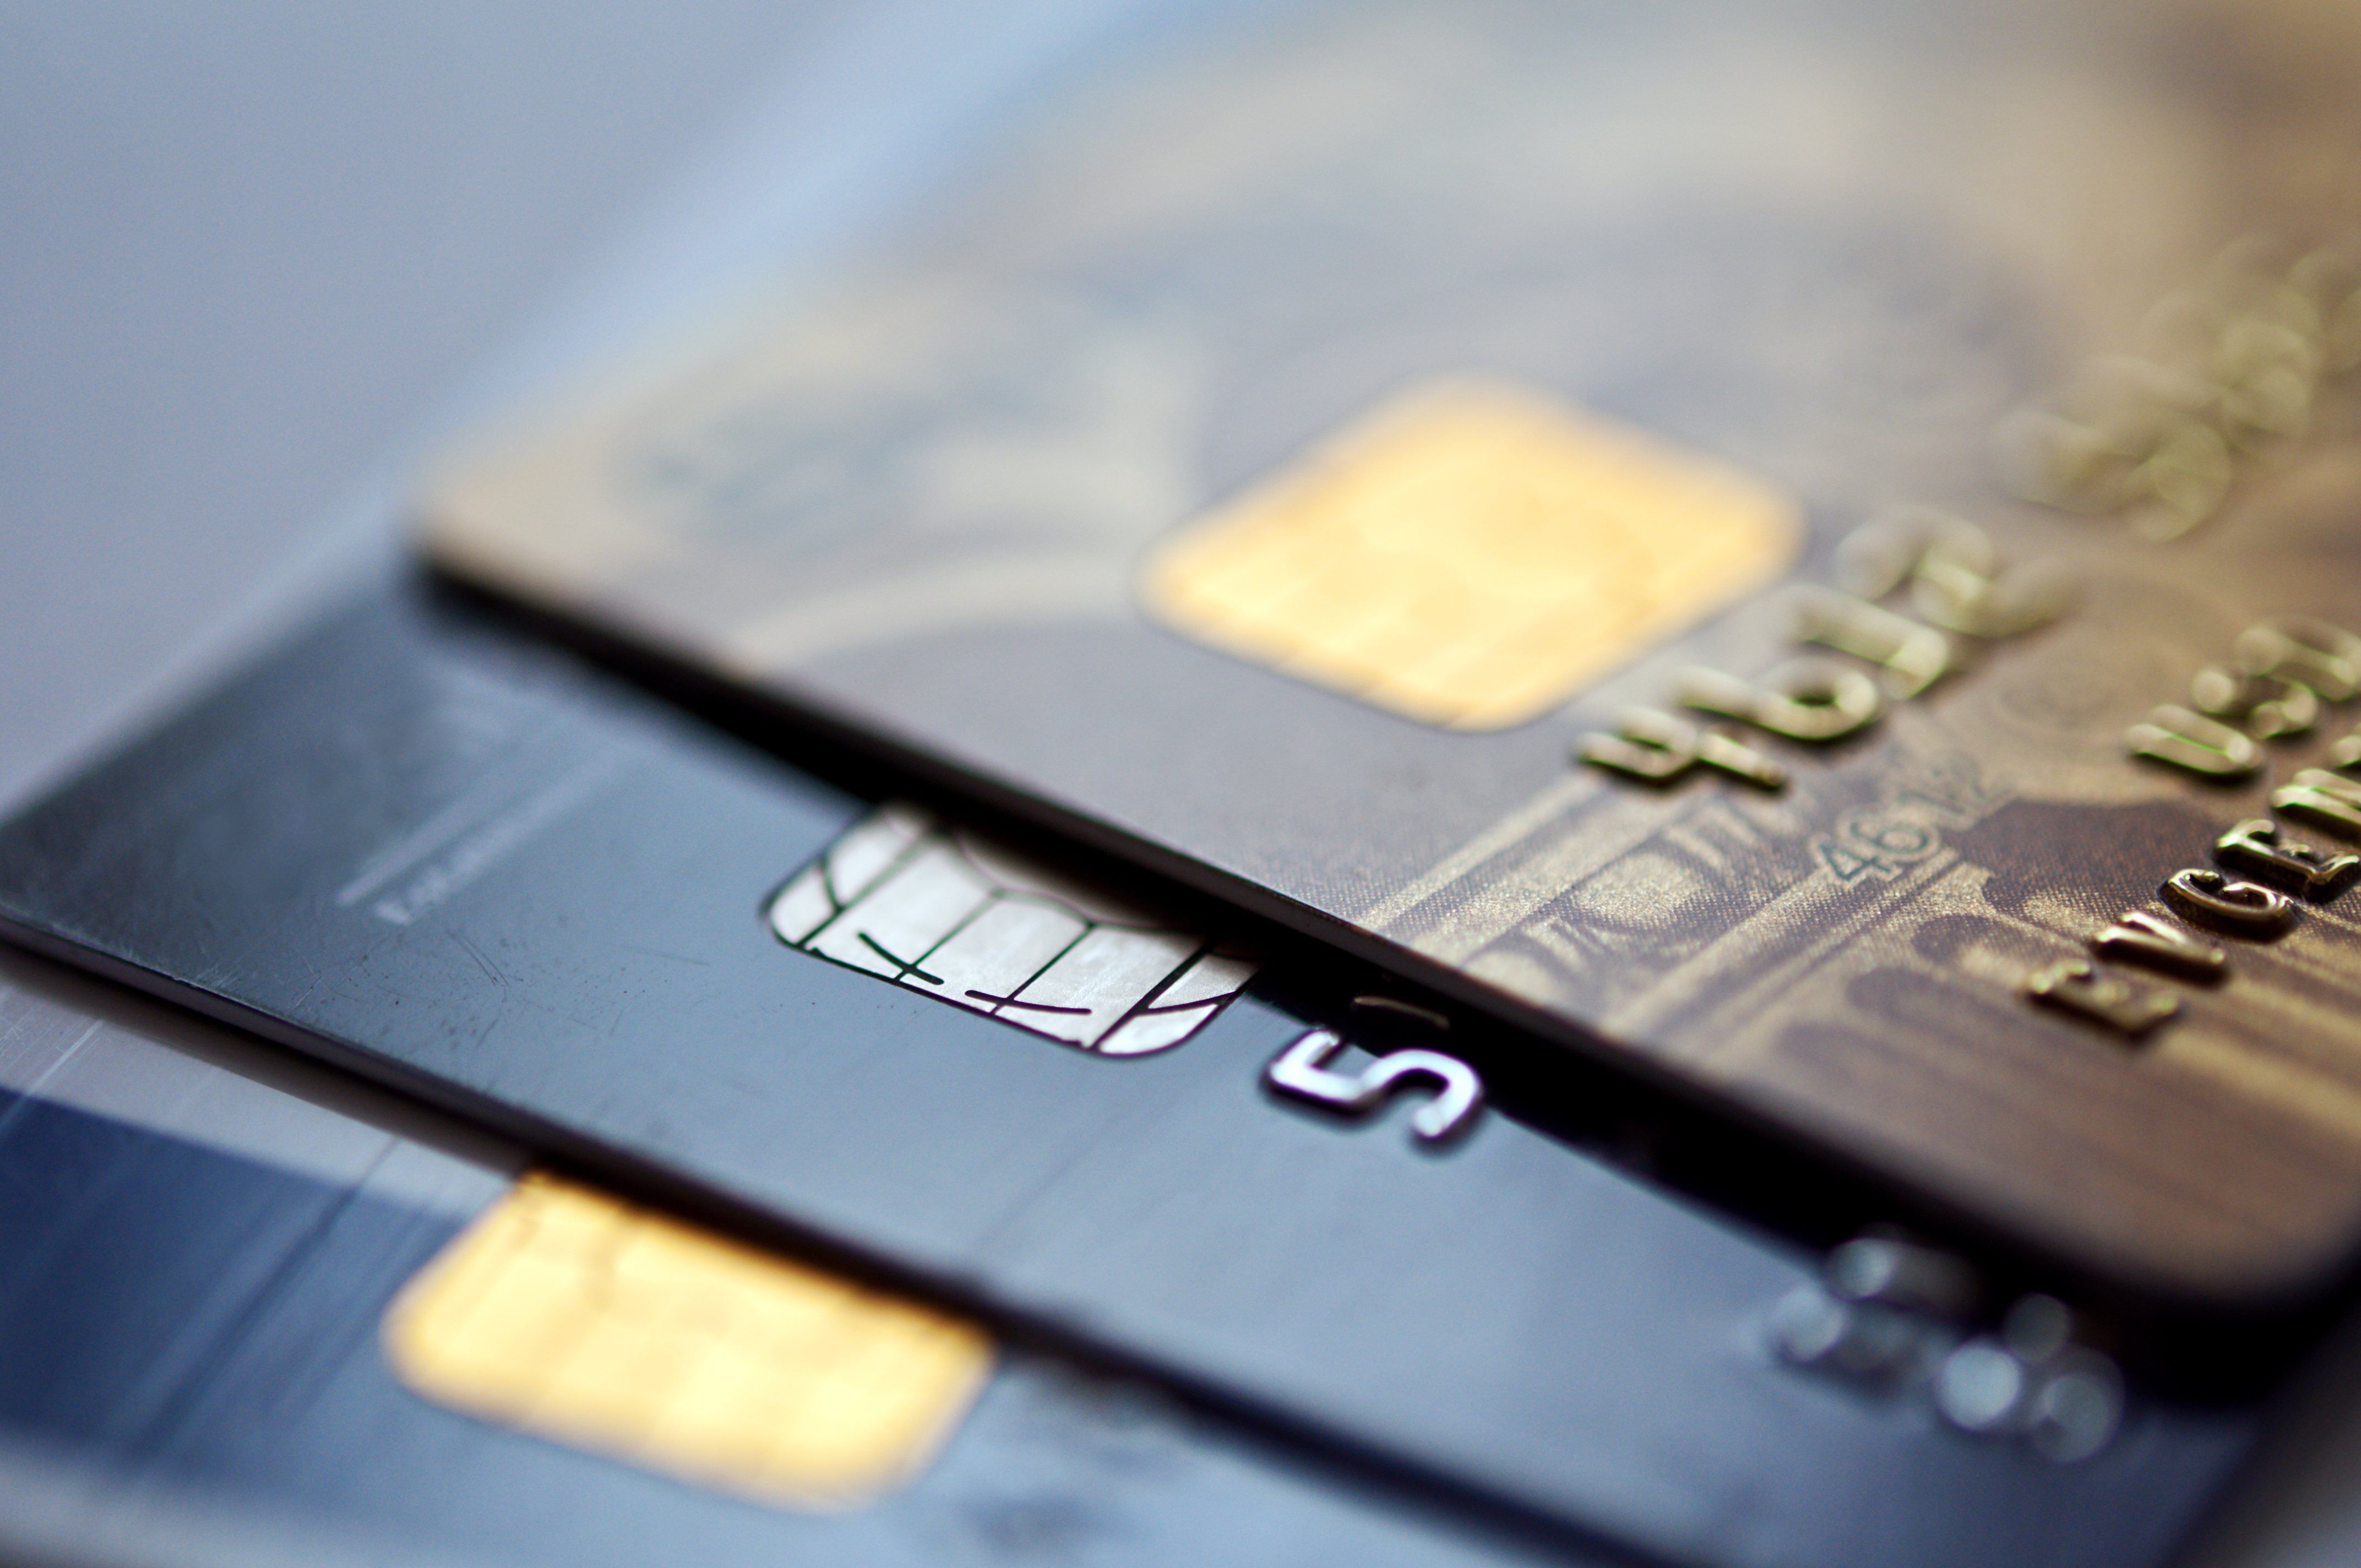 How will EMV technology impact my business?